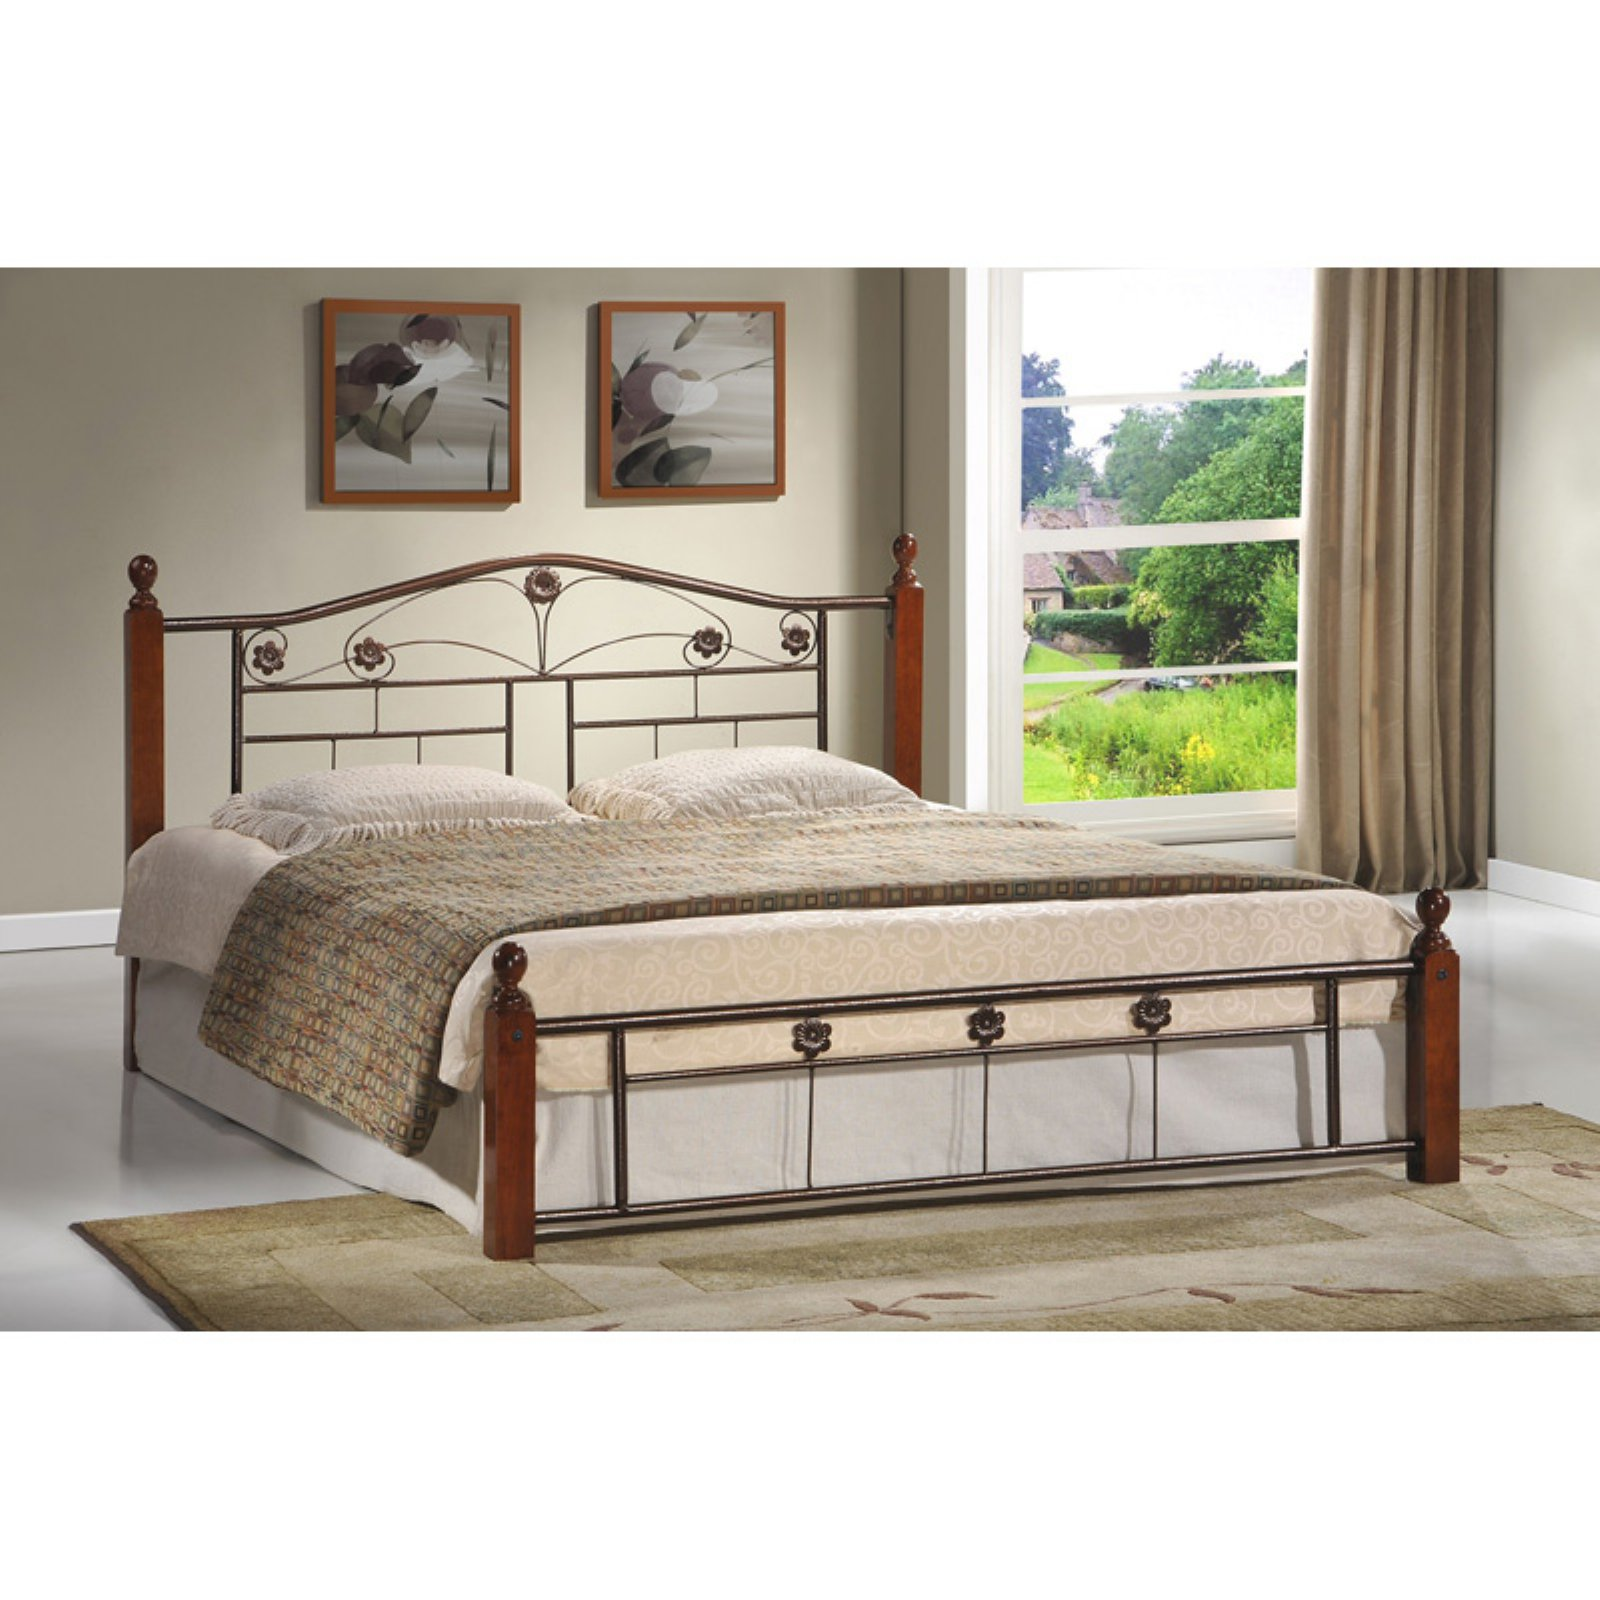 Hodedah Imports Wooden Poster Bed with Metal Frame